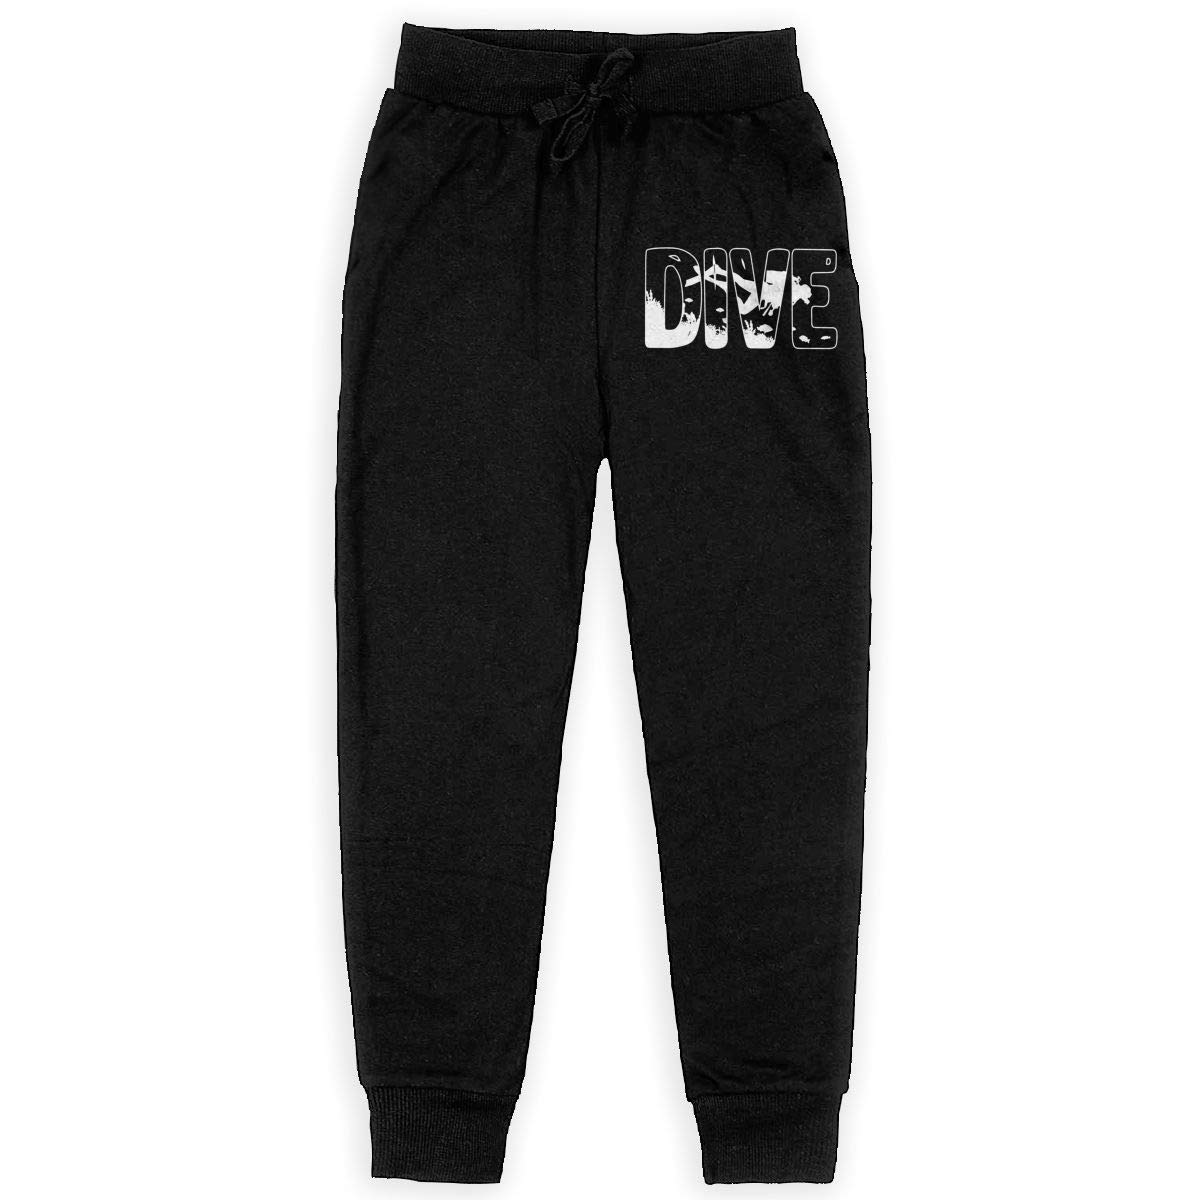 Youth Jogger Pants for Teen Boy WYZVK22 Retro Styled Skydiving Soft//Cozy Sweatpants